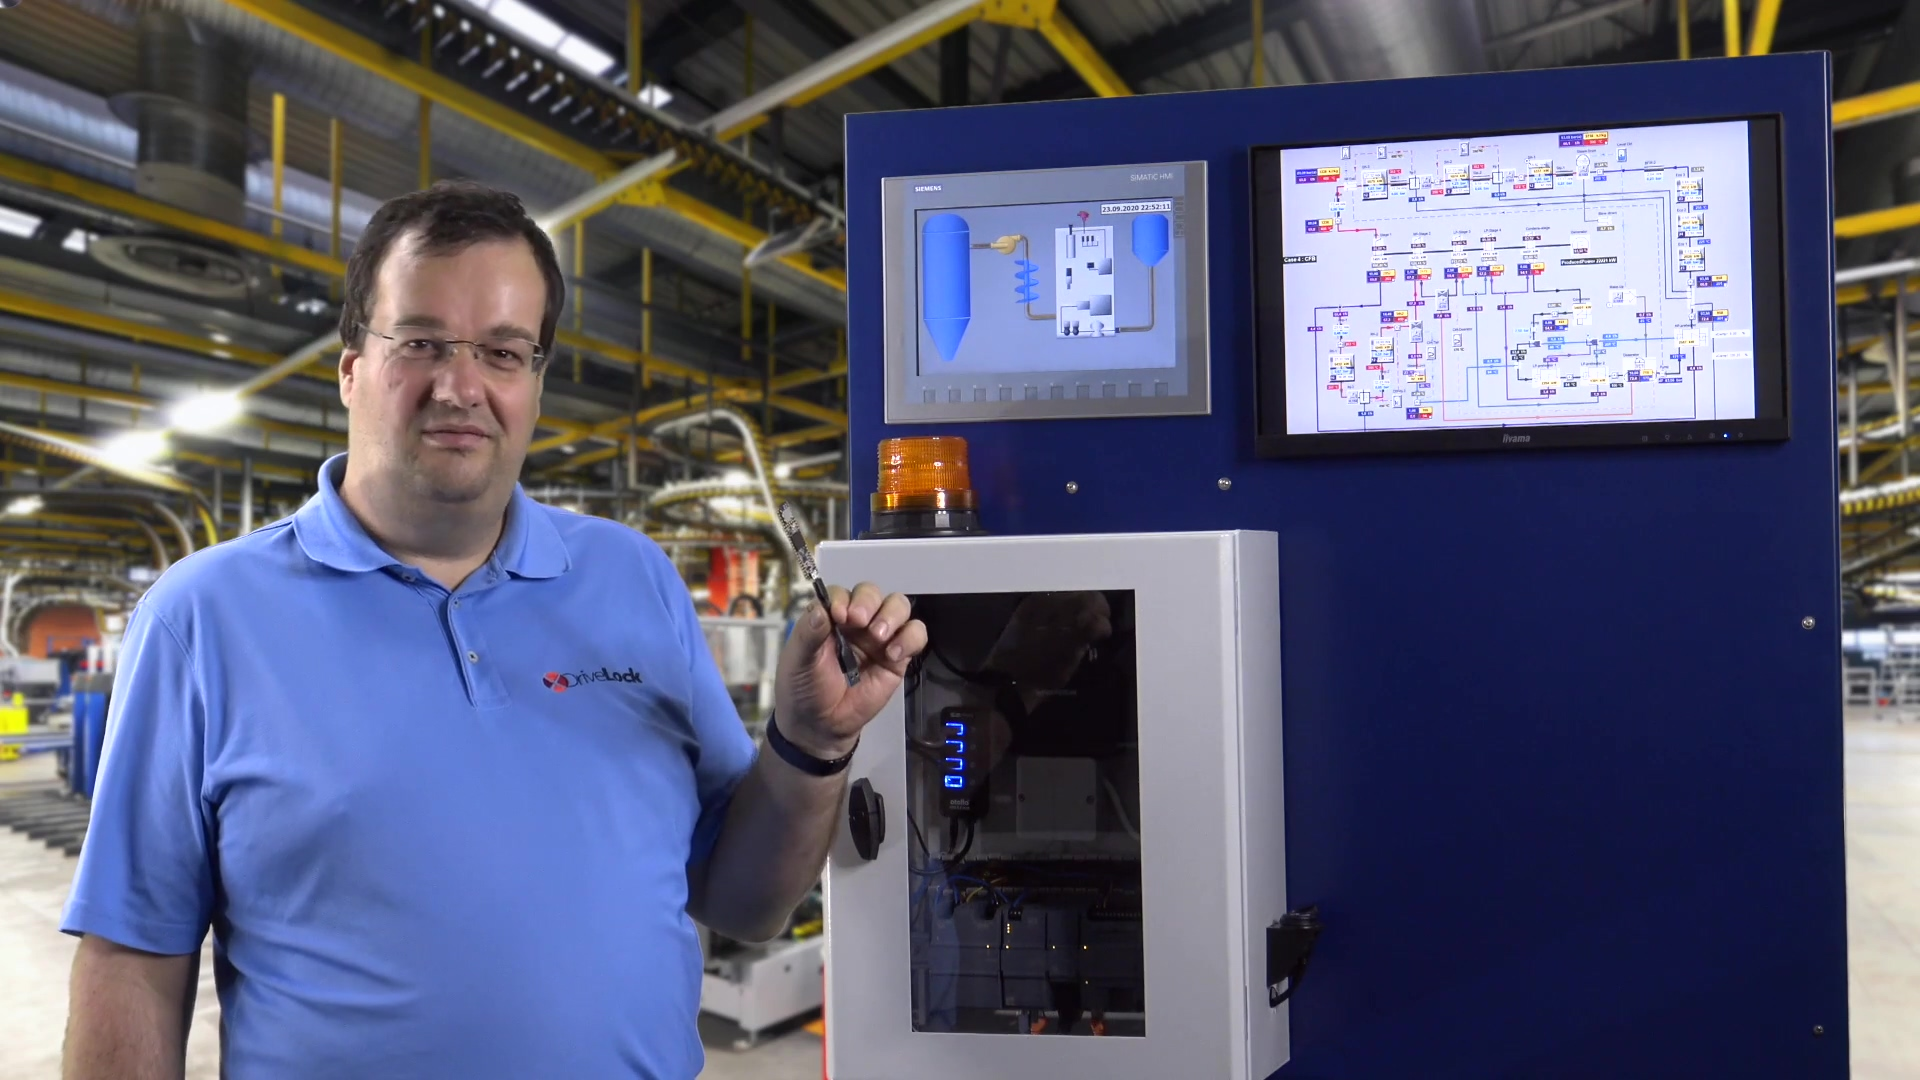 Fachforum Manufacturing - Udo Riedel - Use Case